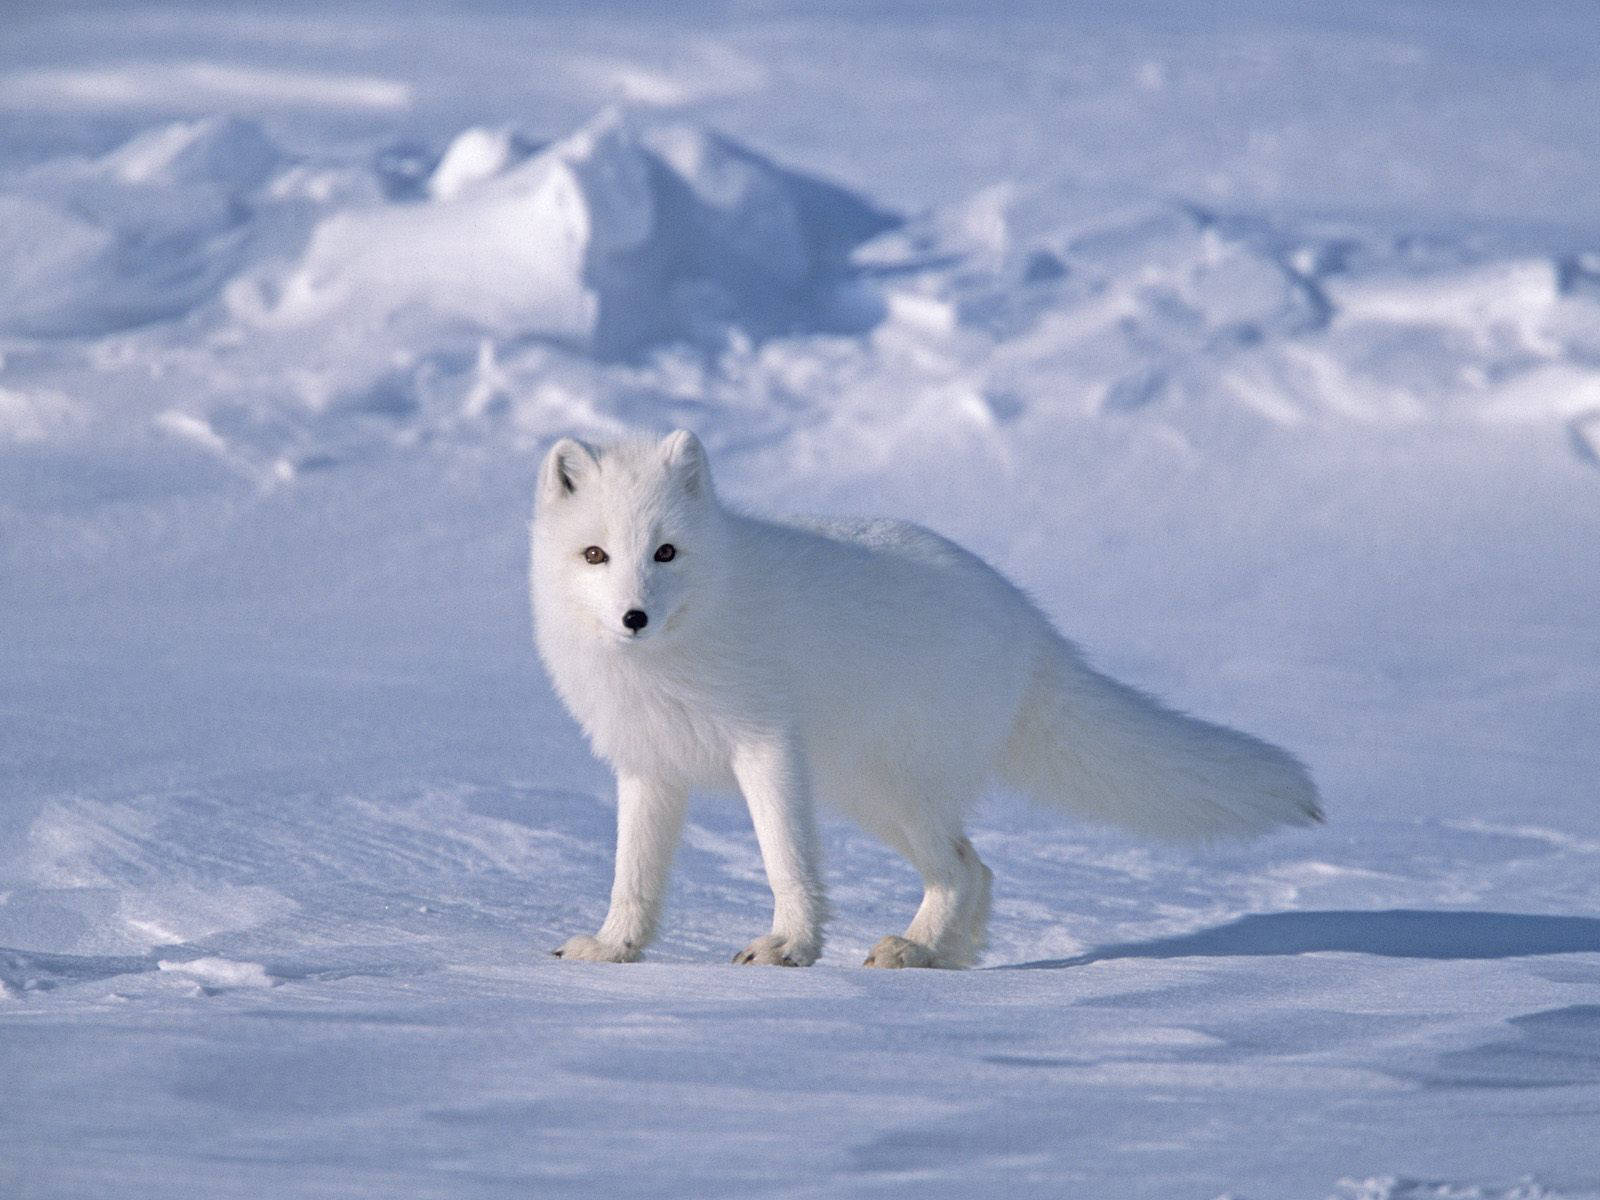 free arctic fox wallpaper 20051 1600x1200 px hdwallsource com